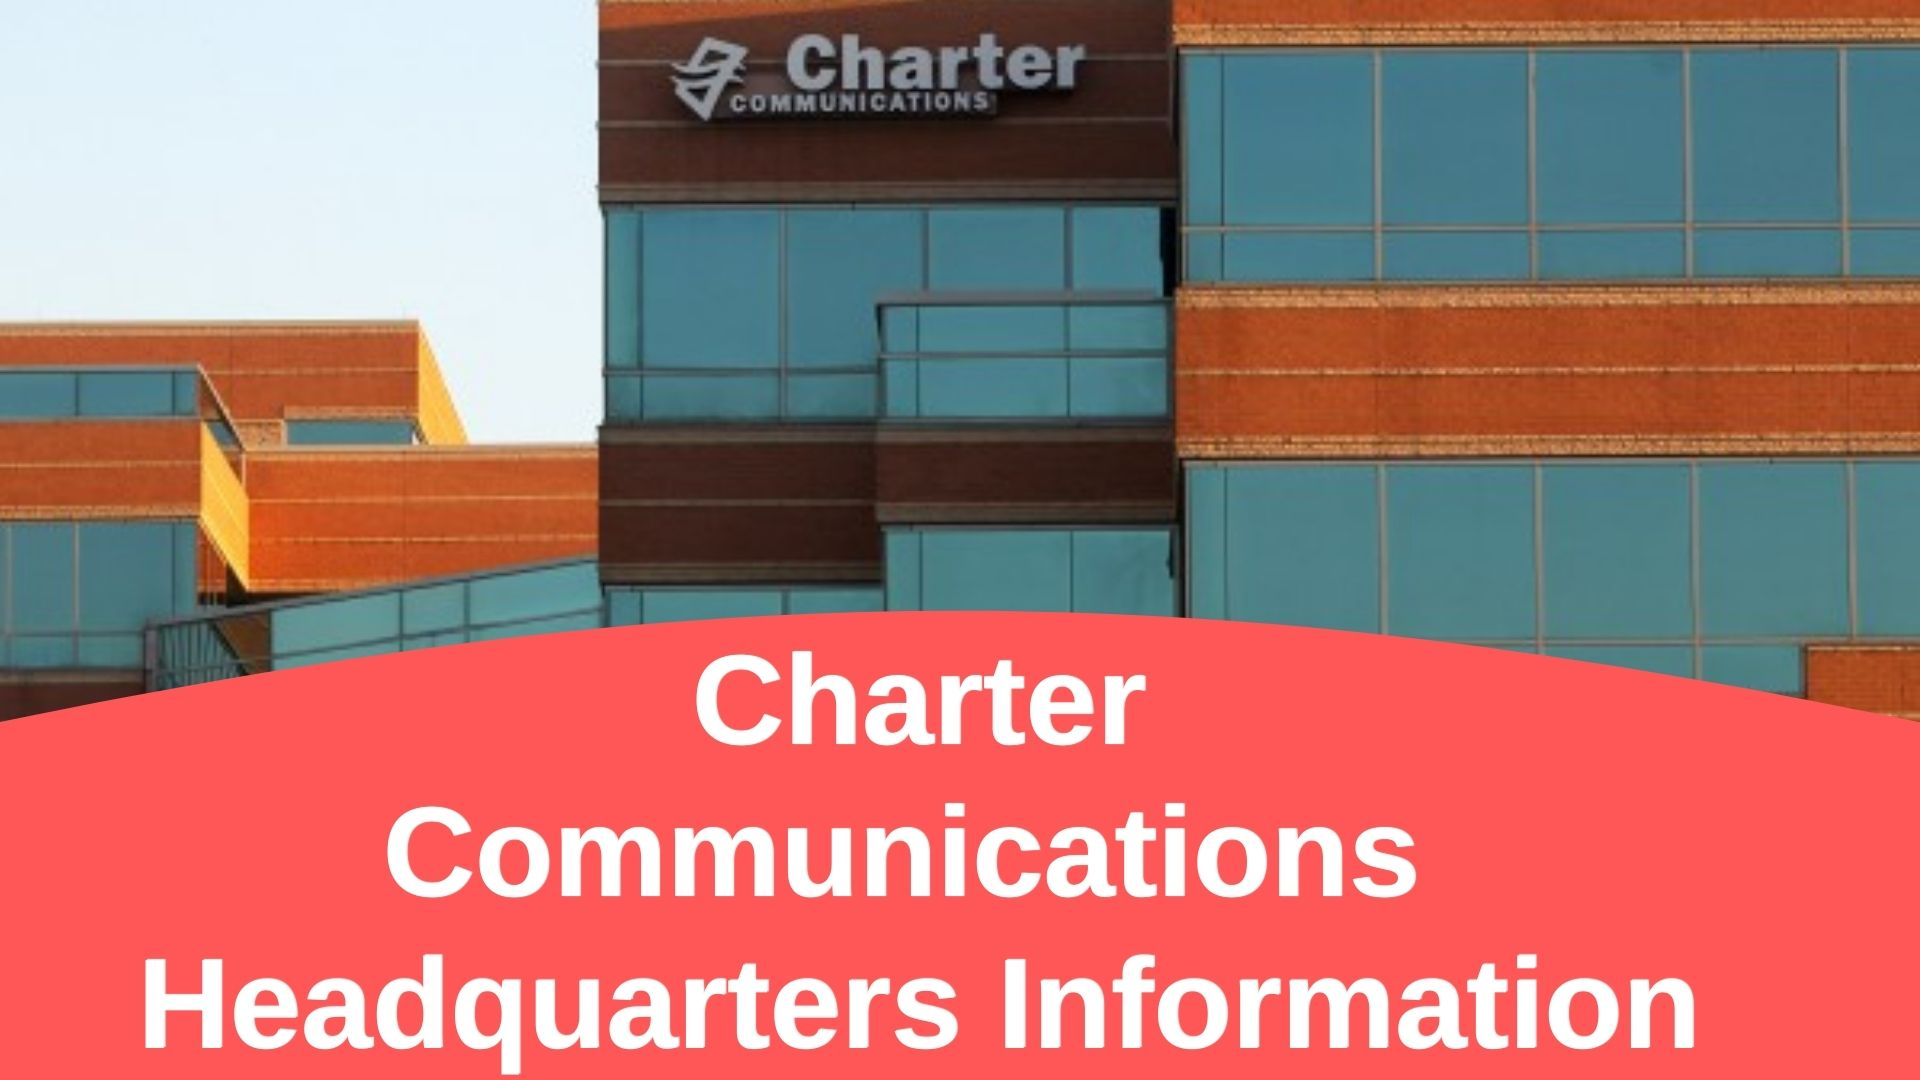 Charter Communications Headquarters Information